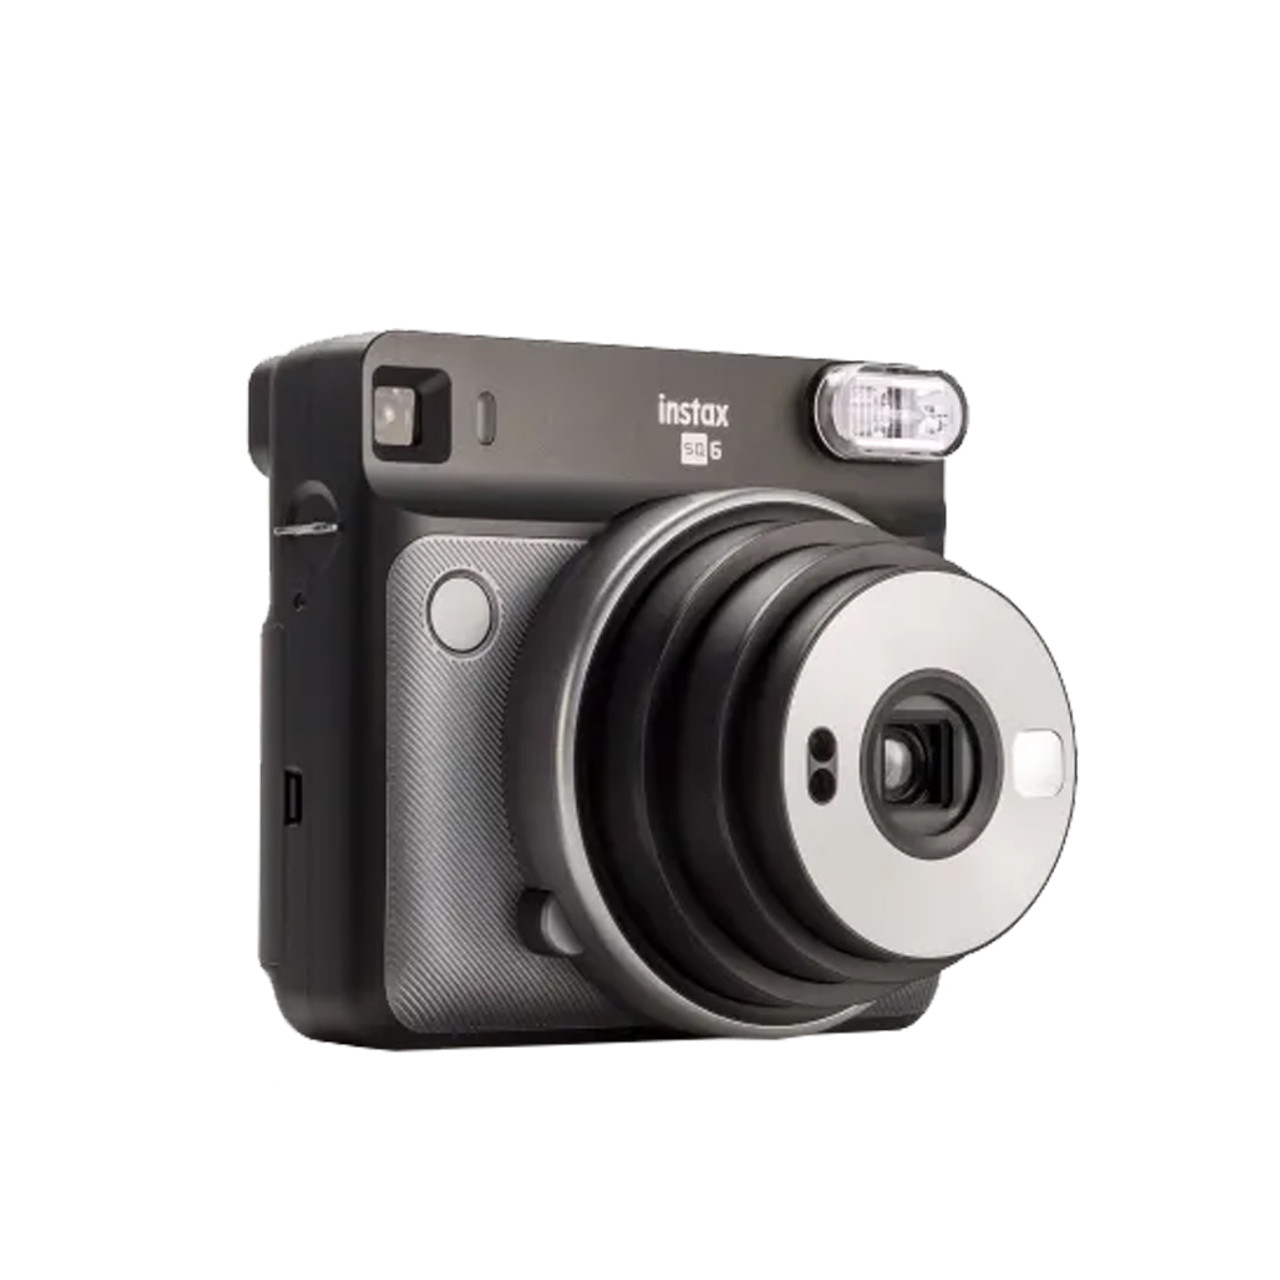 Instax Square SQ6 Camera - Graphite Gray